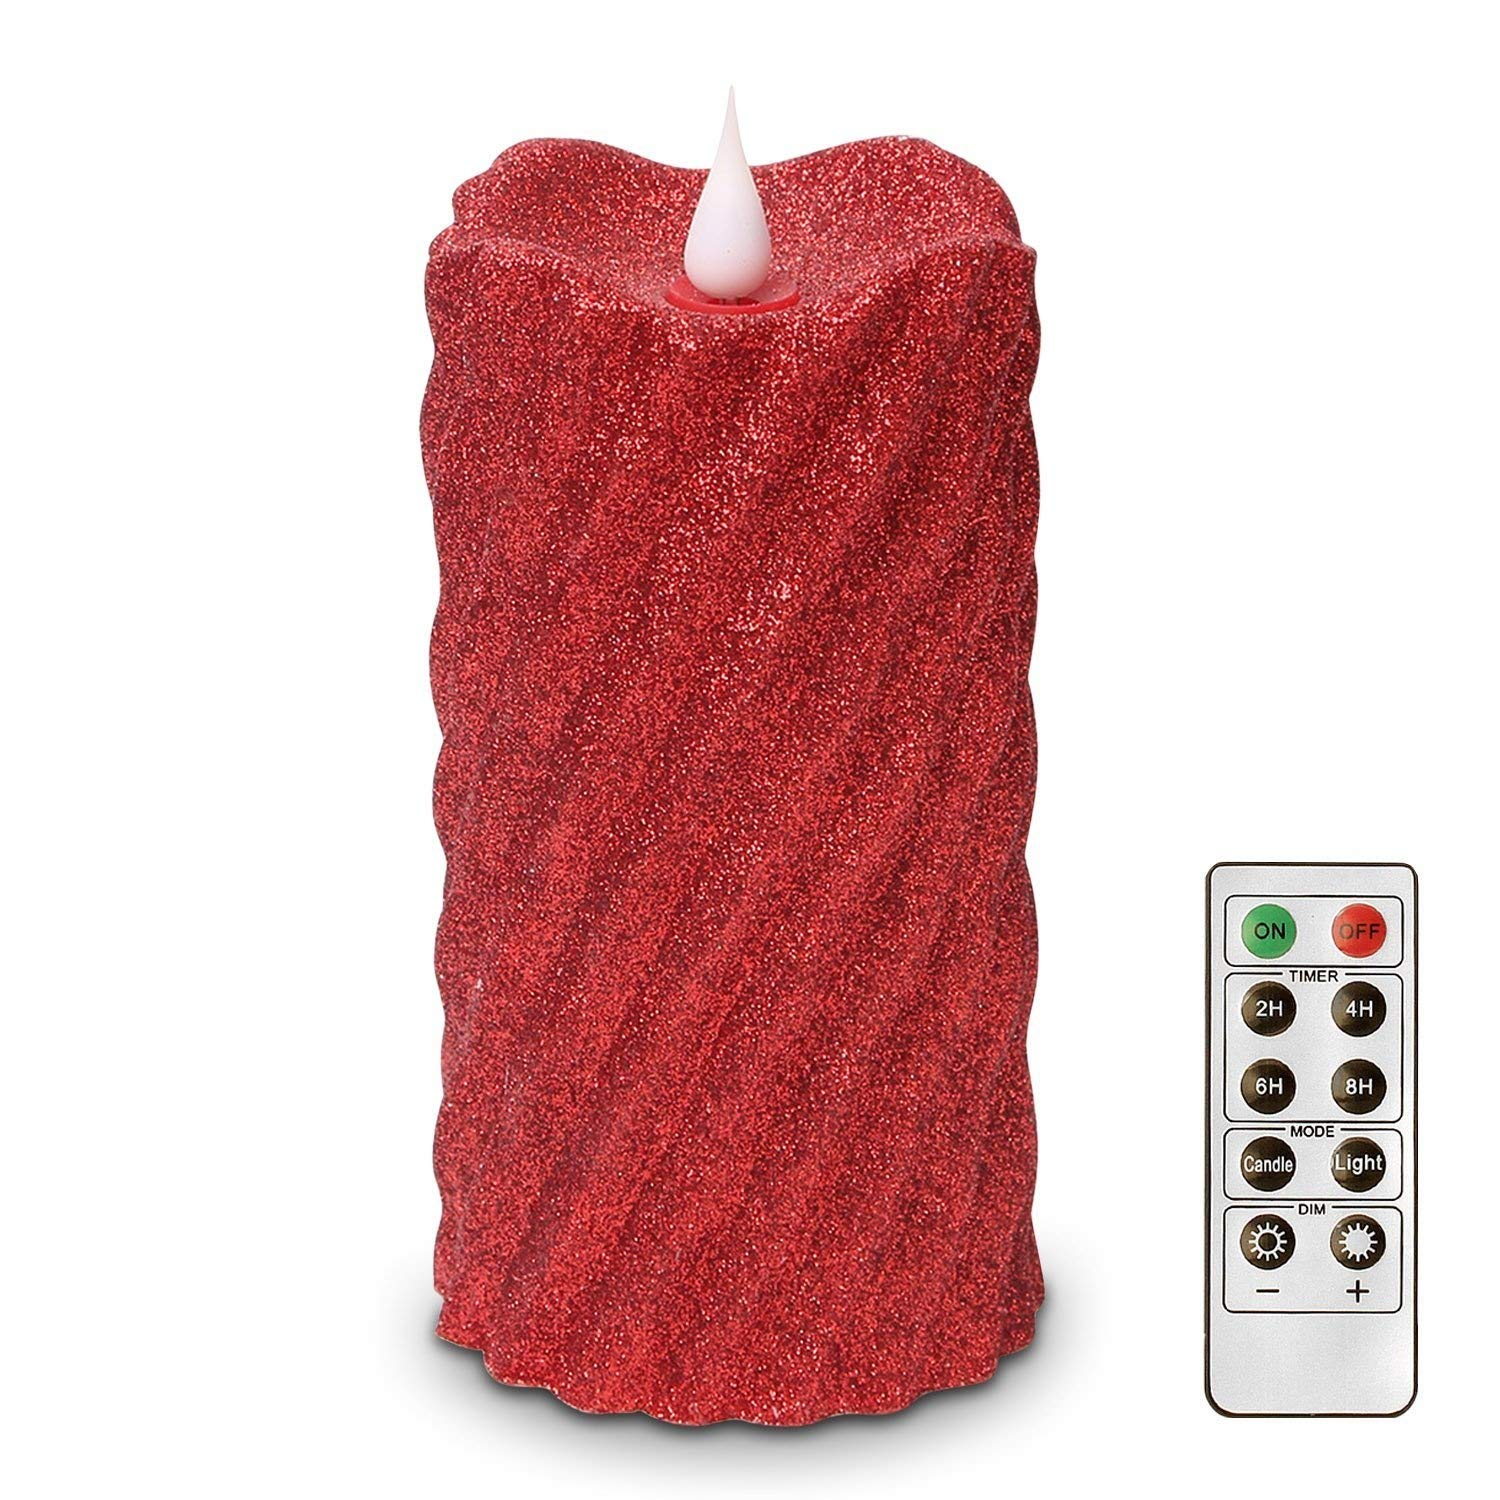 Red Flameless Candles with Timer - LED Battery Operated Candles with Remote, Wax Flameless Flickering Candles for Christmas Decorations by HANPURE